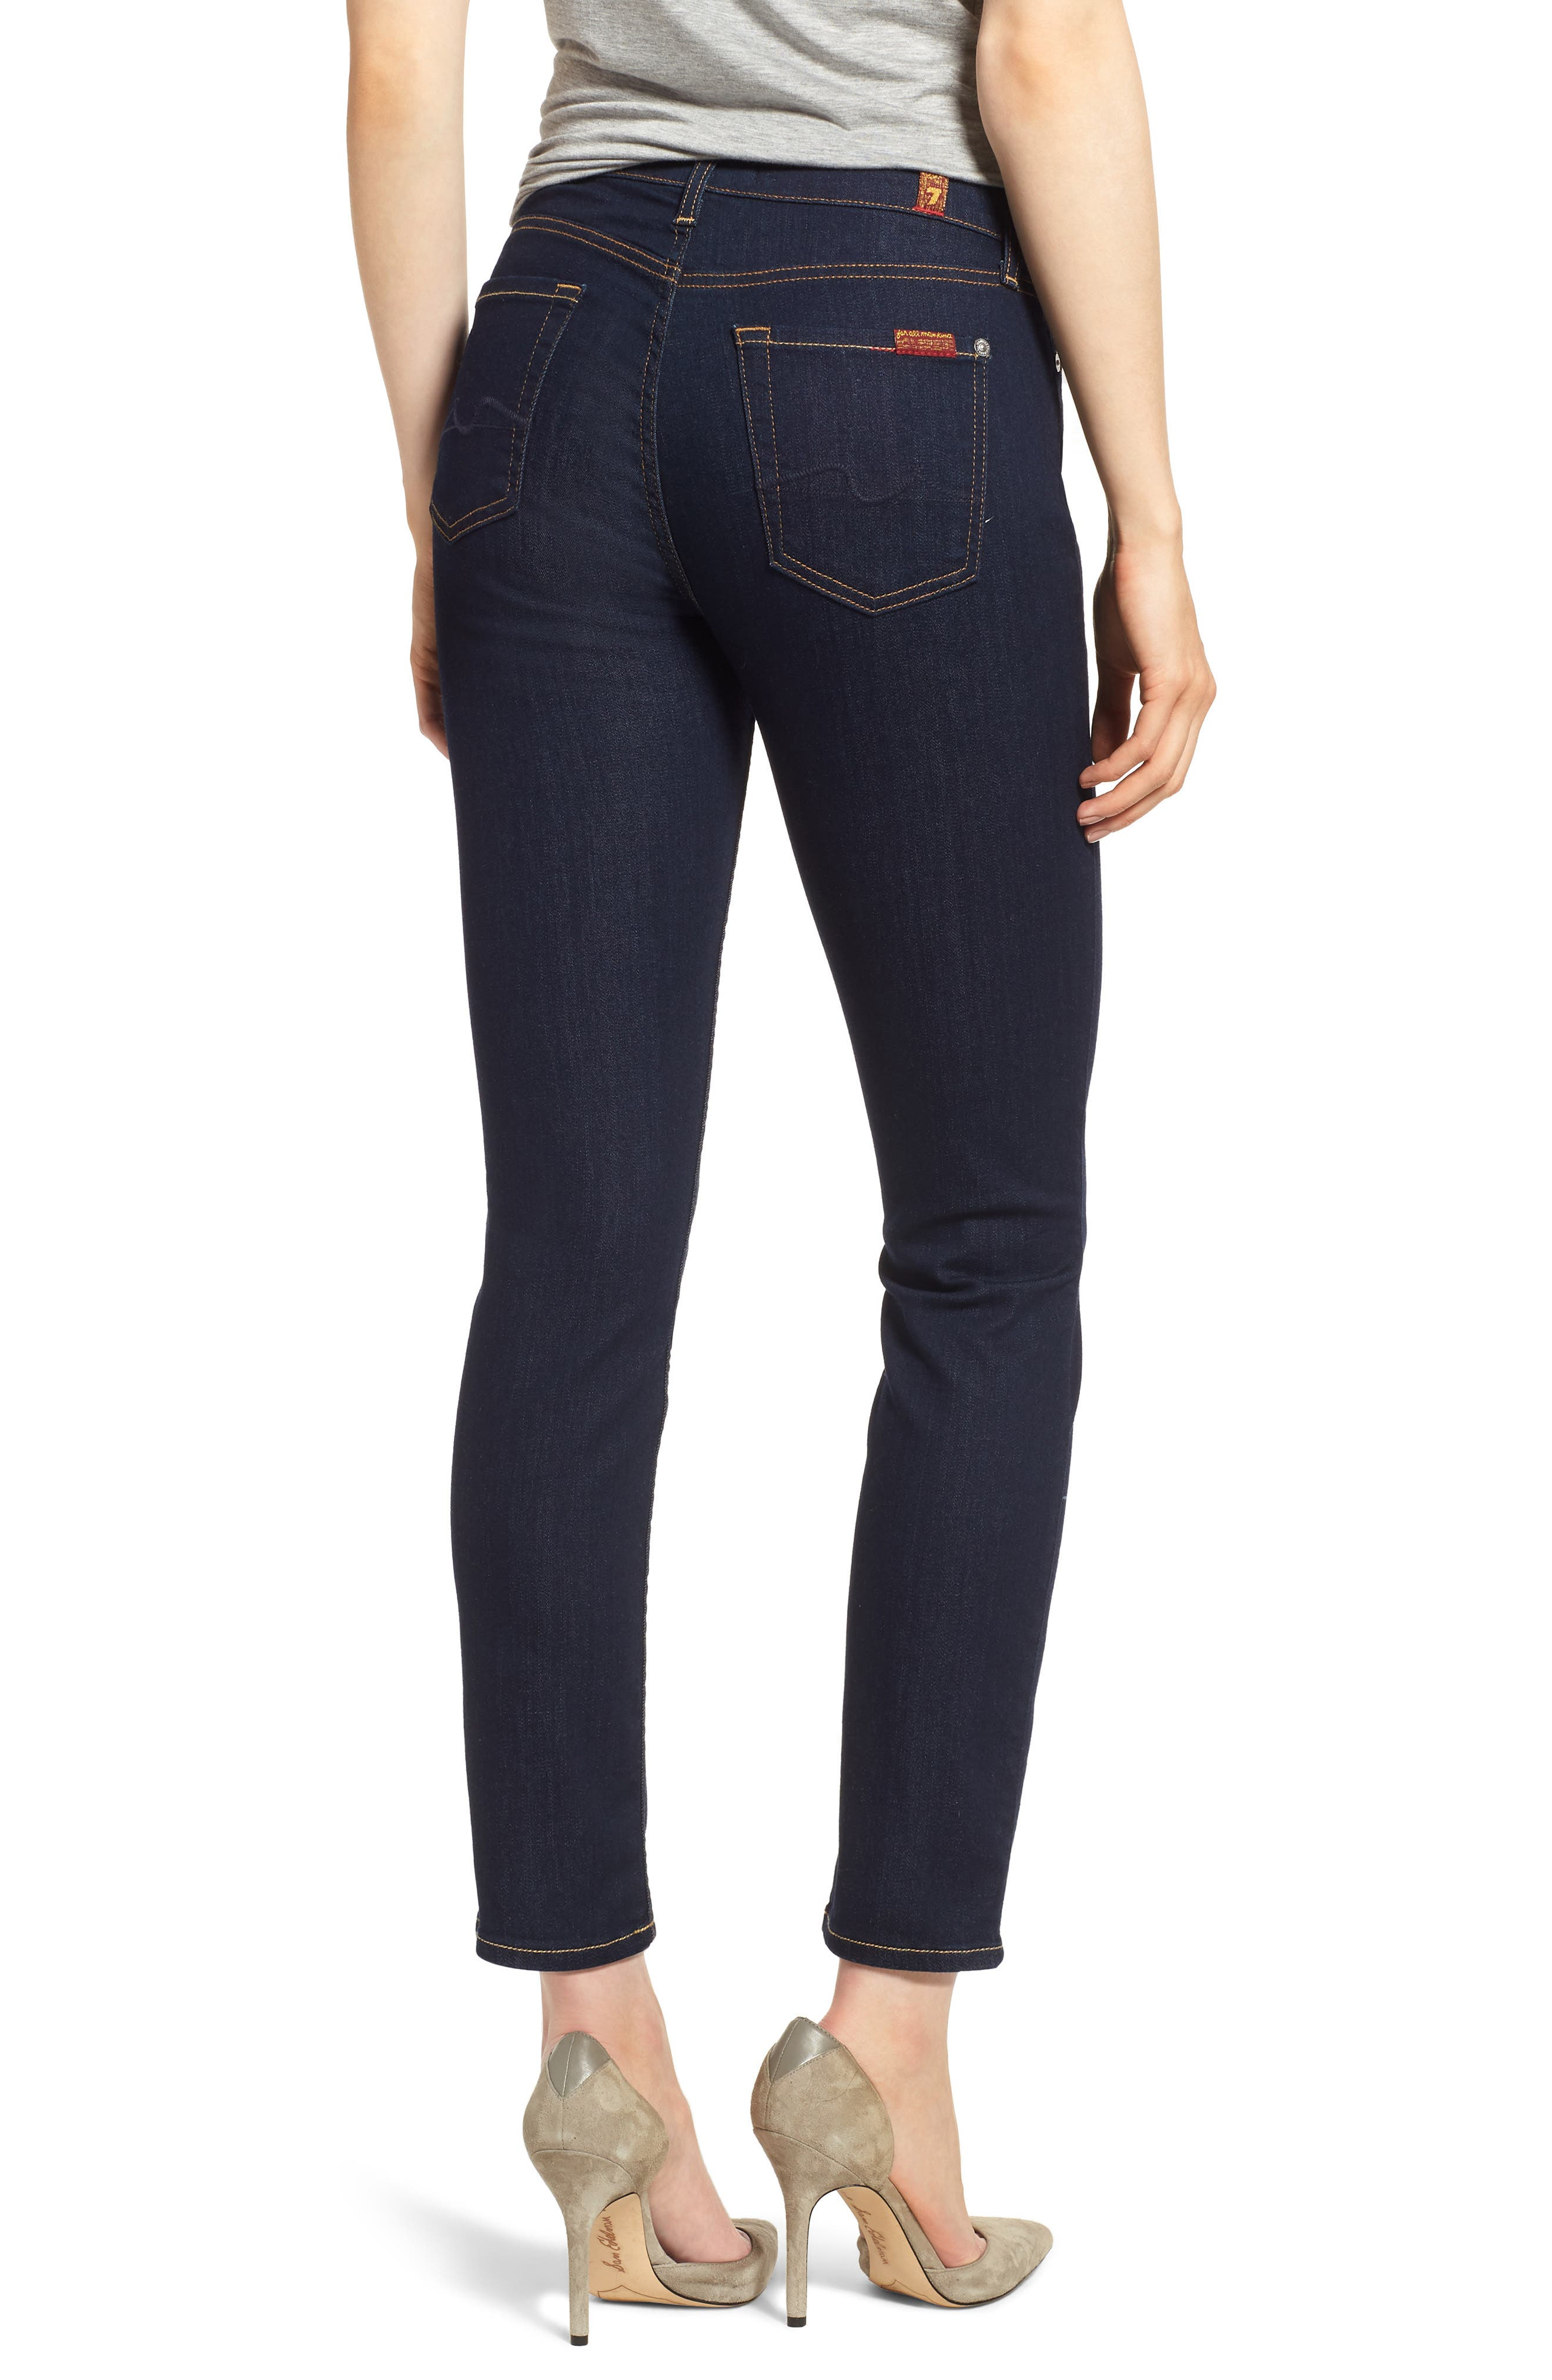 b(air) Roxanne Ankle Skinny Jeans,                             Alternate thumbnail 2, color,                             B(Air) Authentic Rinse